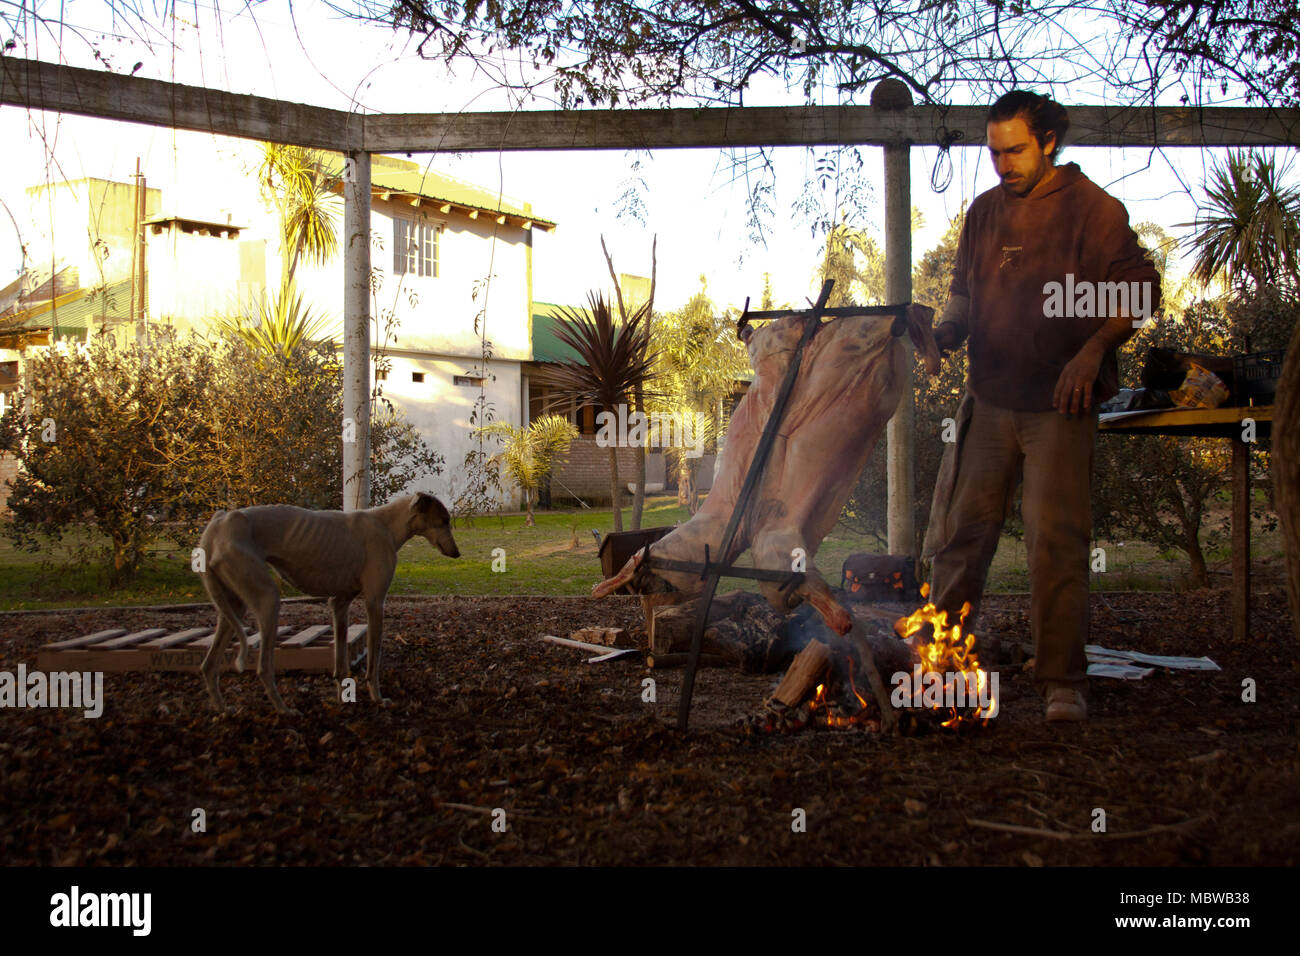 Cooking meat outside - Stock Image